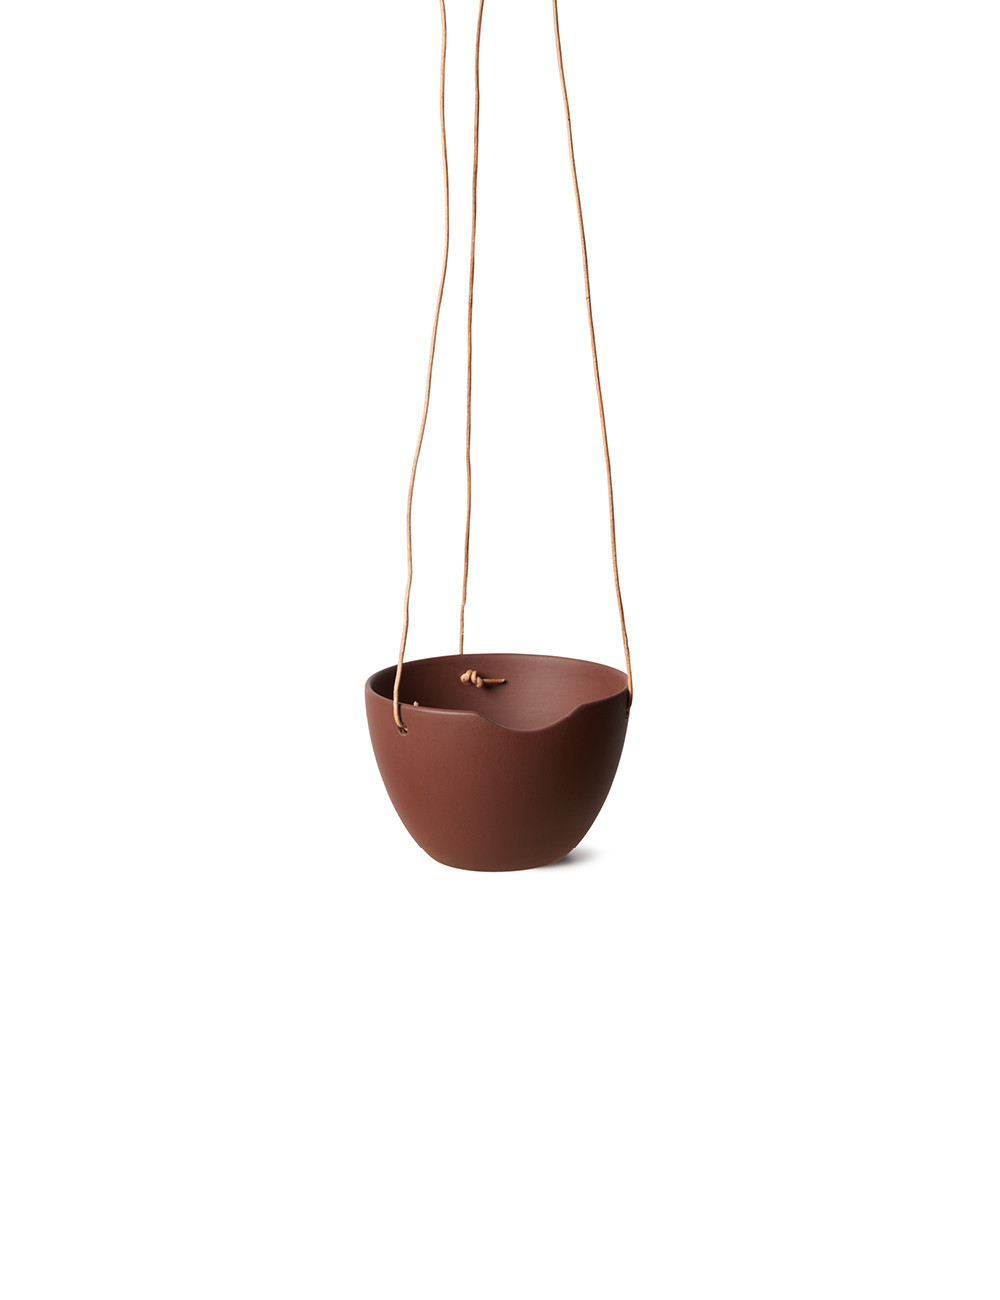 Cut cup grow / bowl with leather string, Anne Black